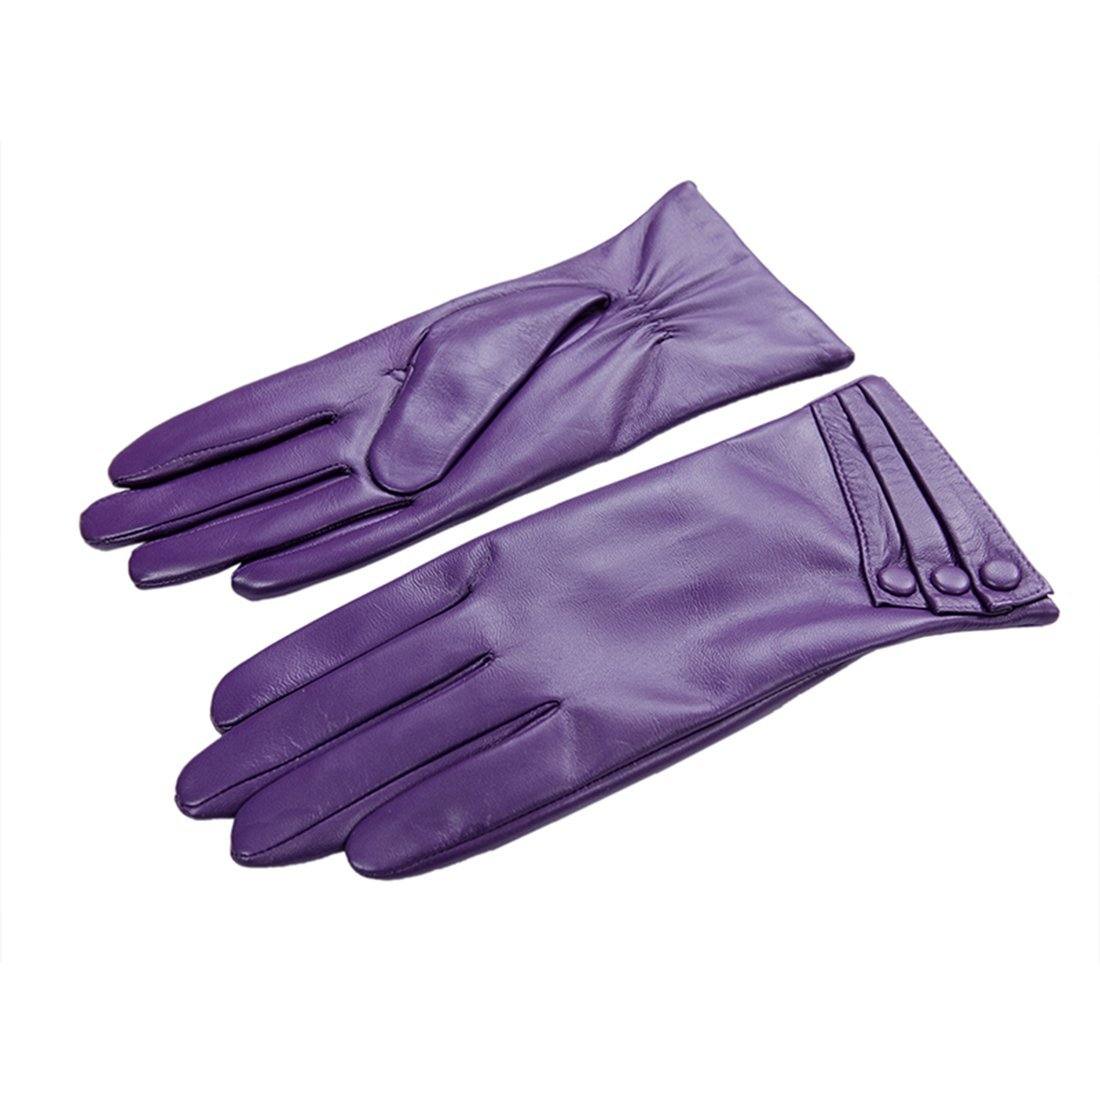 Nappaglo Nappa Leather Gloves Warm Lining Winter Button Decoration Imported Leather Lambskin Gloves for Women (XL, Purple)